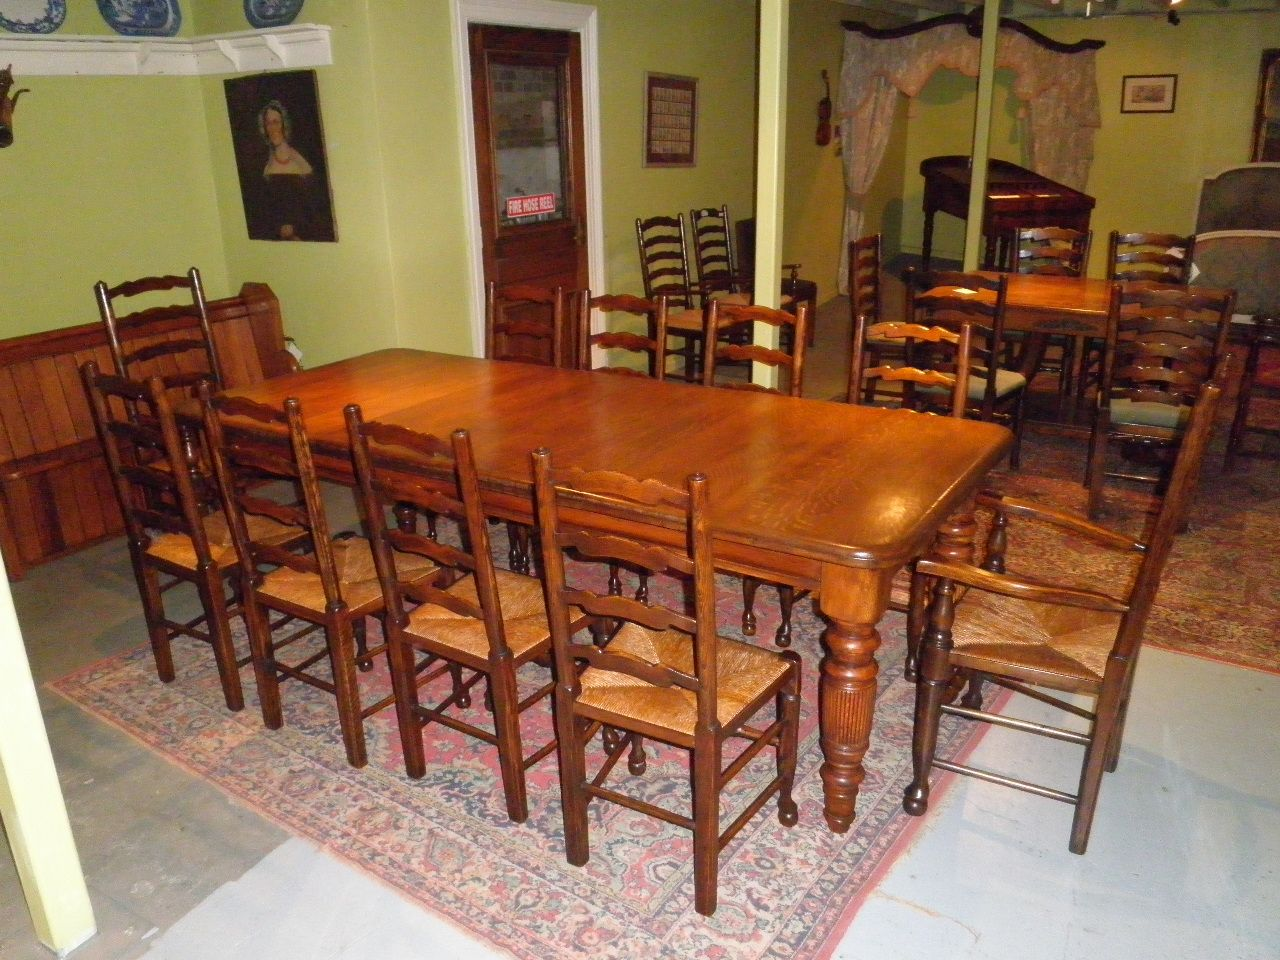 10 Superb Square Dining Table Ideas For A Contemporary: Superb Scottish Oak Antique Dining Table $3200 A